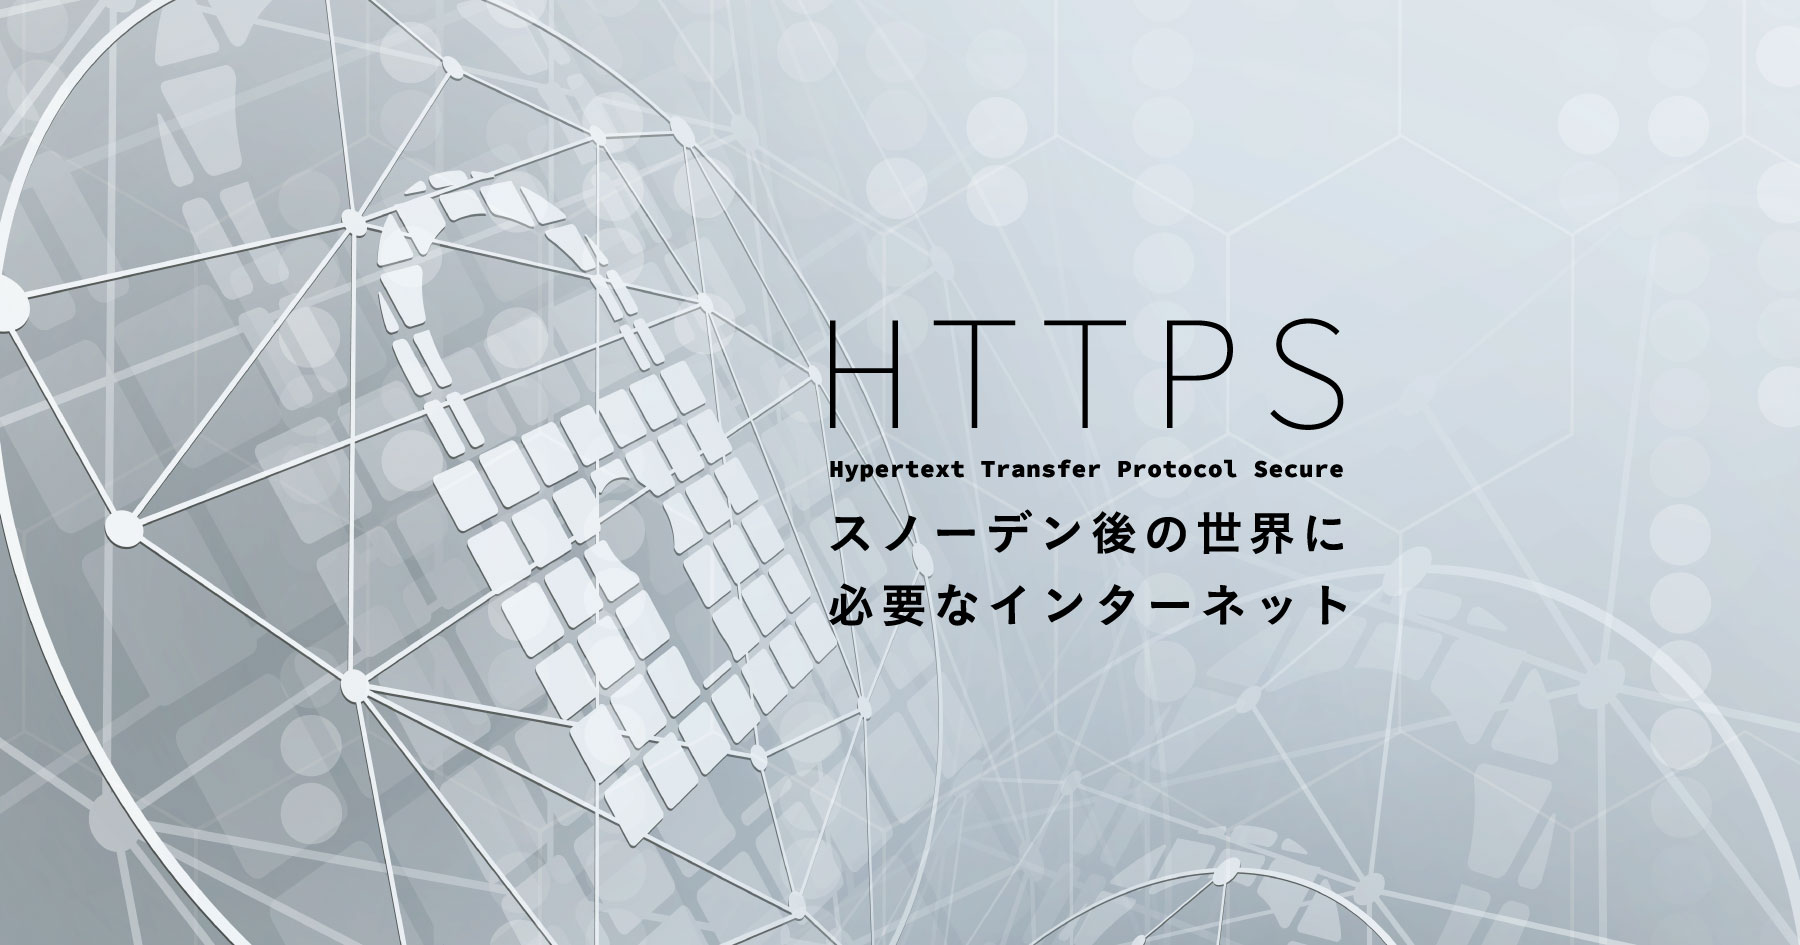 HTTPS: Hypertext Transfer Protocol Secure